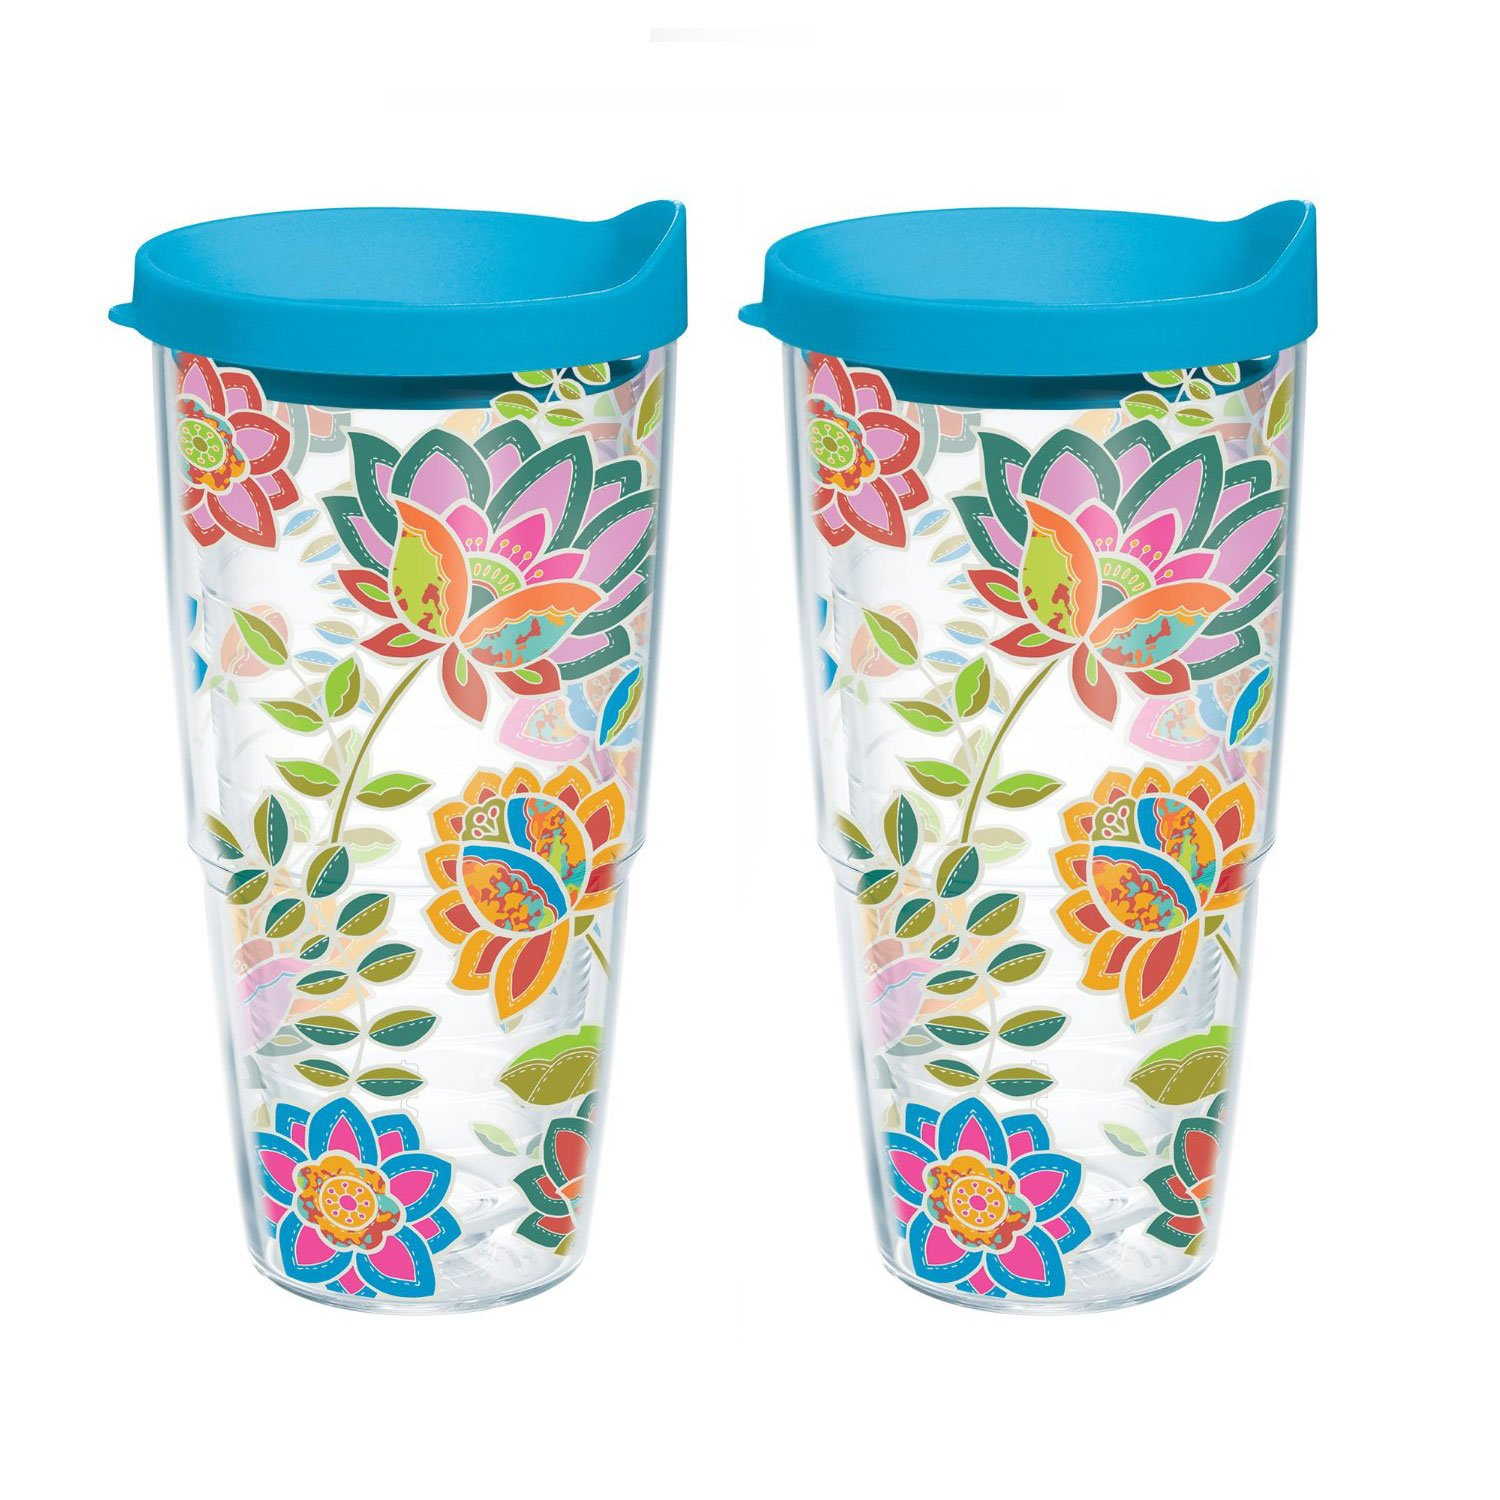 Tervis 24oz, Bohemian Floral, Set of Two Tumblers, Each Tumbler is 4 Inches in Diameter by 8.25 Inches Tall